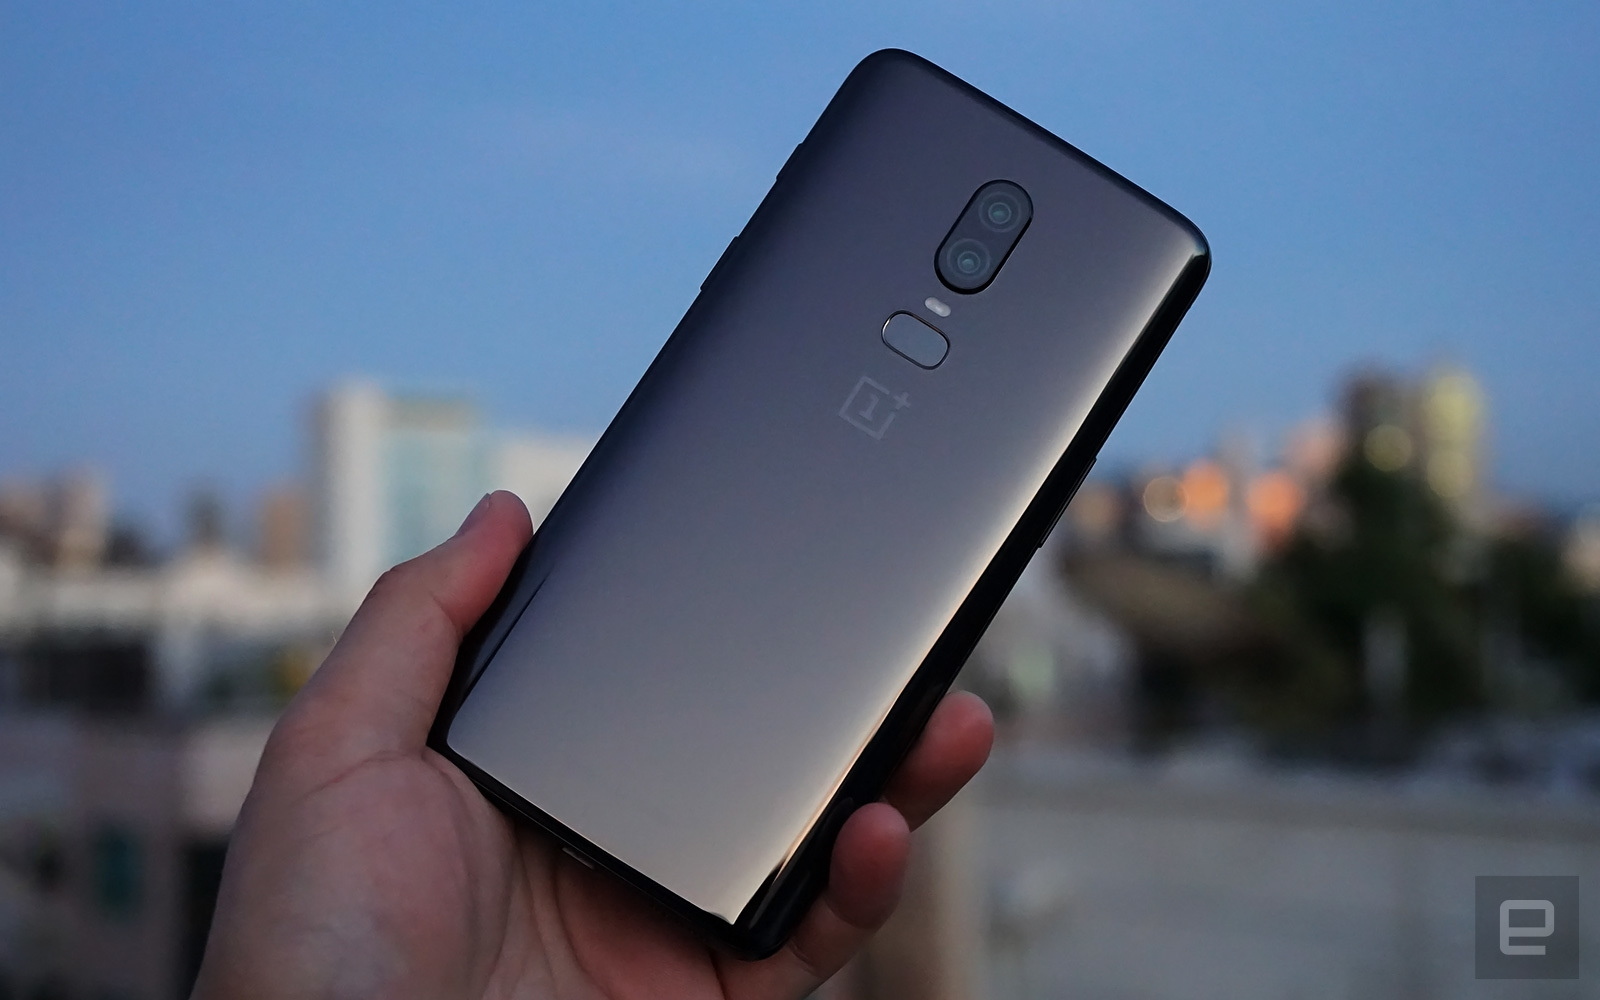 OnePlus rolls out its version of Android Pie | DeviceDaily.com